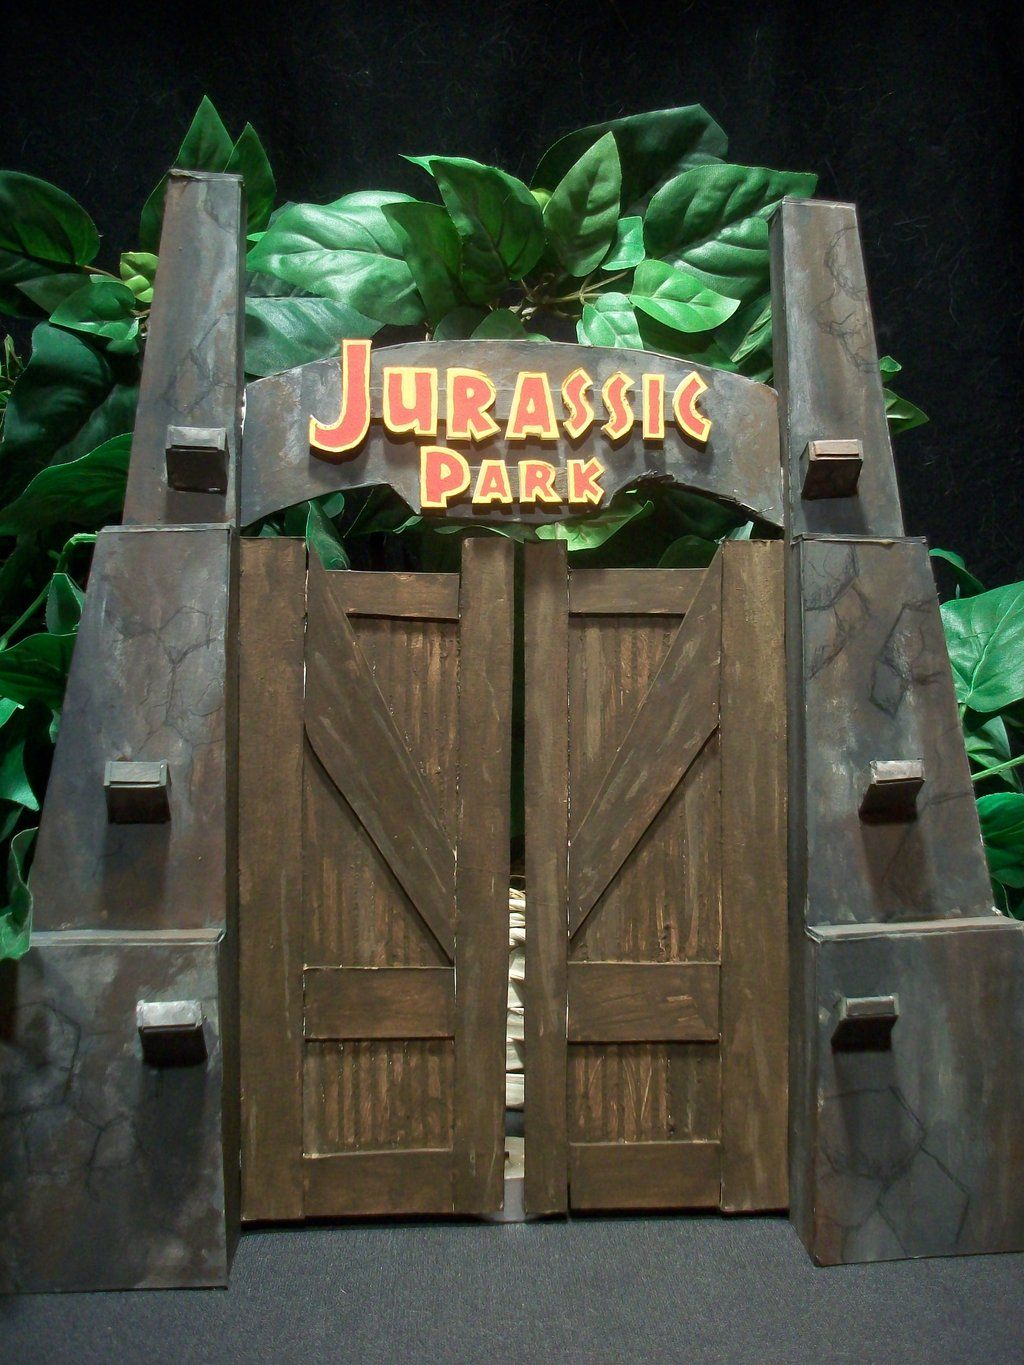 Jurassic Park Gate By Pink12301deviantart On DeviantArt